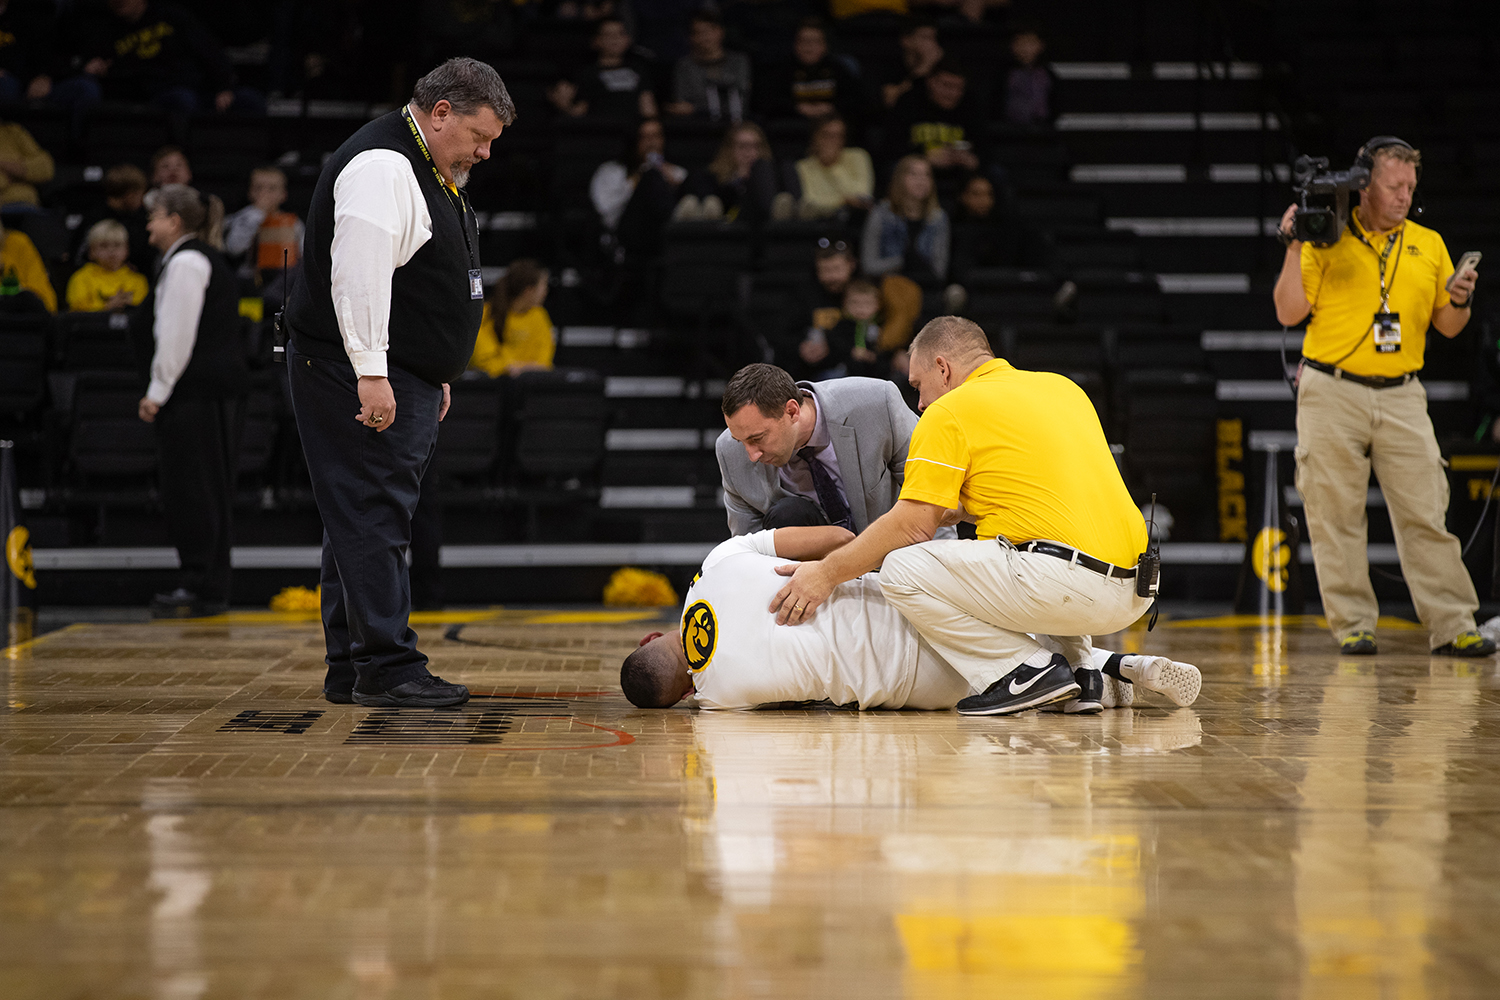 A+spirit+squad+member+lays+on+the+ground+after+injuring+his+shoulder+during+the+men%27s+basketball+game+against+Savannah+State+at+Carver-Hawkeye+Arena+on+Tuesday%2C+December+22%2C+2018.+The+Hawkeyes+defeated+the+Tigers+110-64.